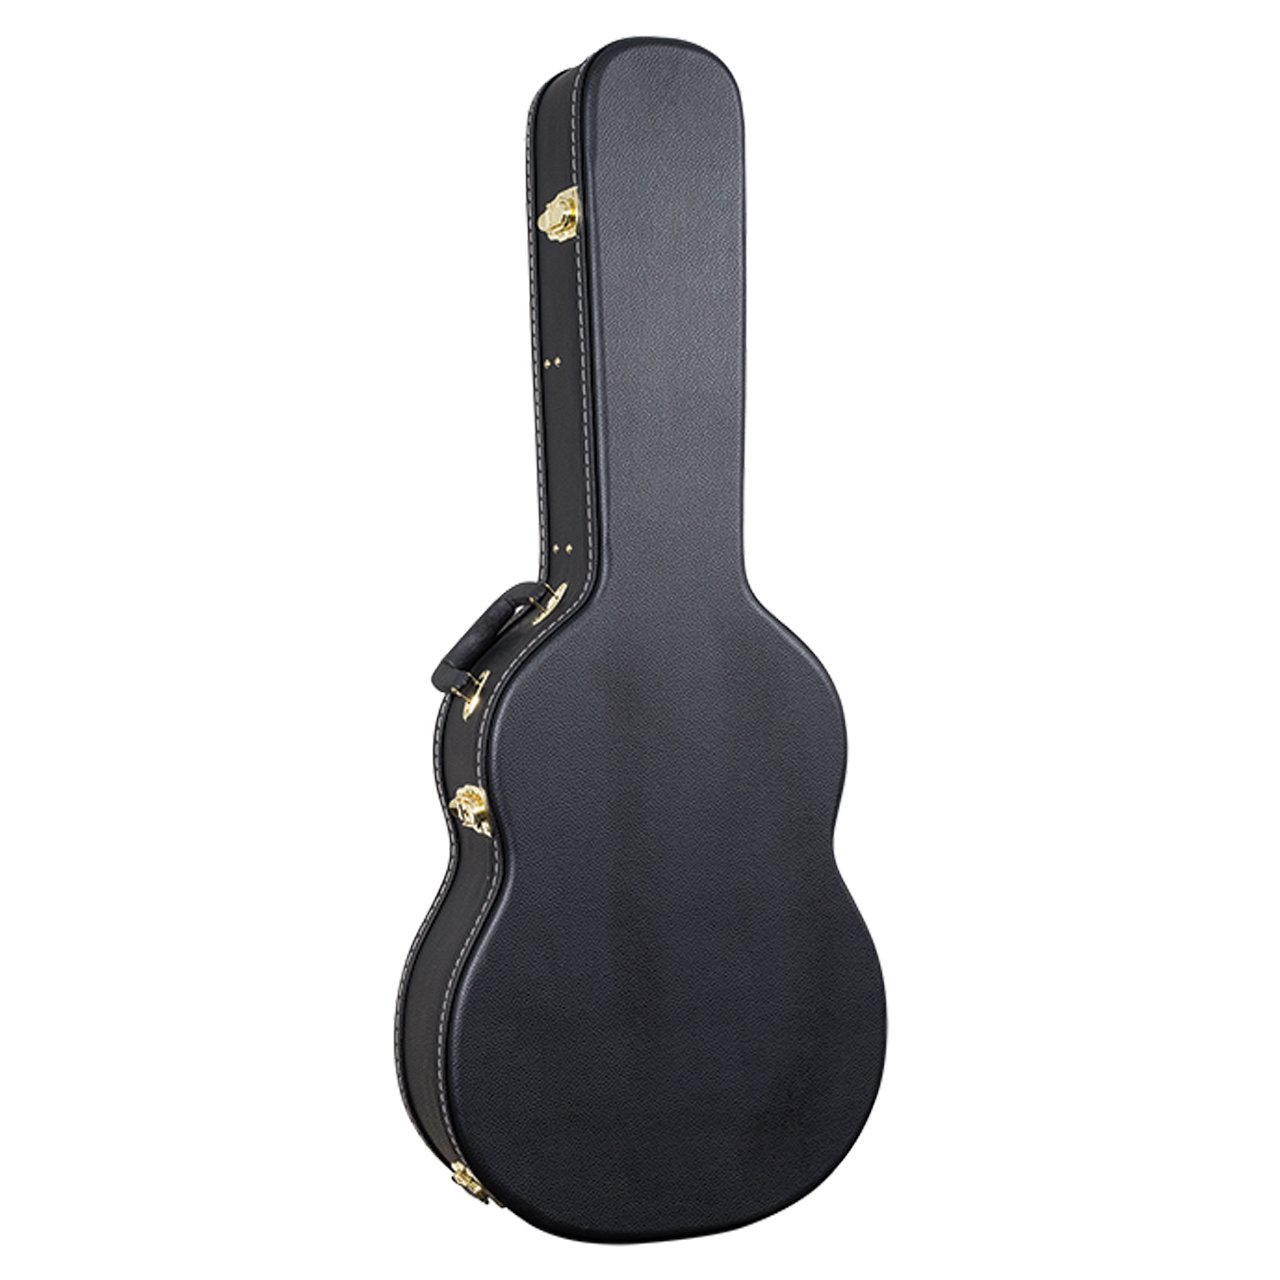 Guardian CG-016-C Economy Archtop Hardshell Case for Classical Guitar